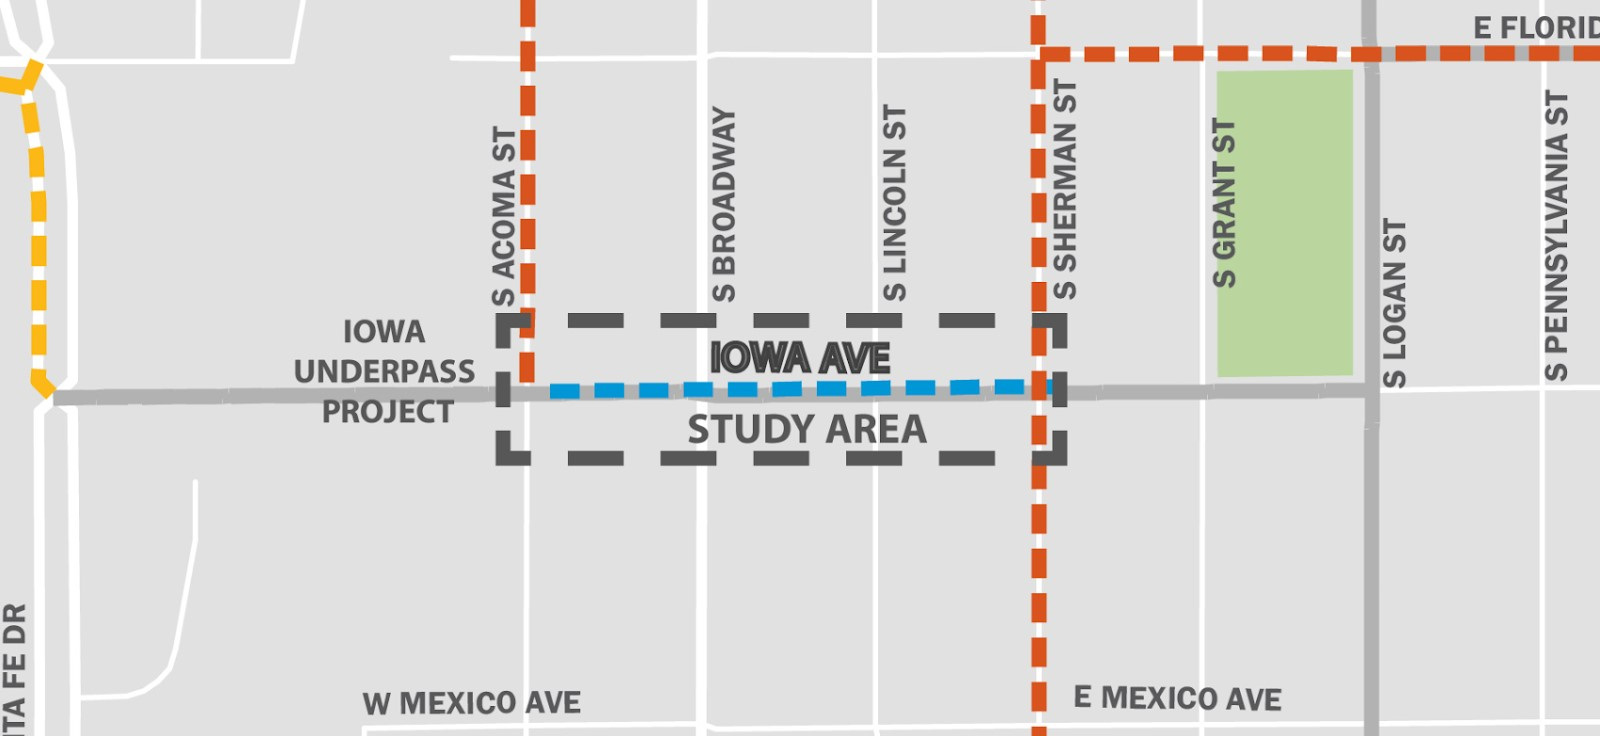 Iowa Avenue Study Area - South Central Community Transportation Network